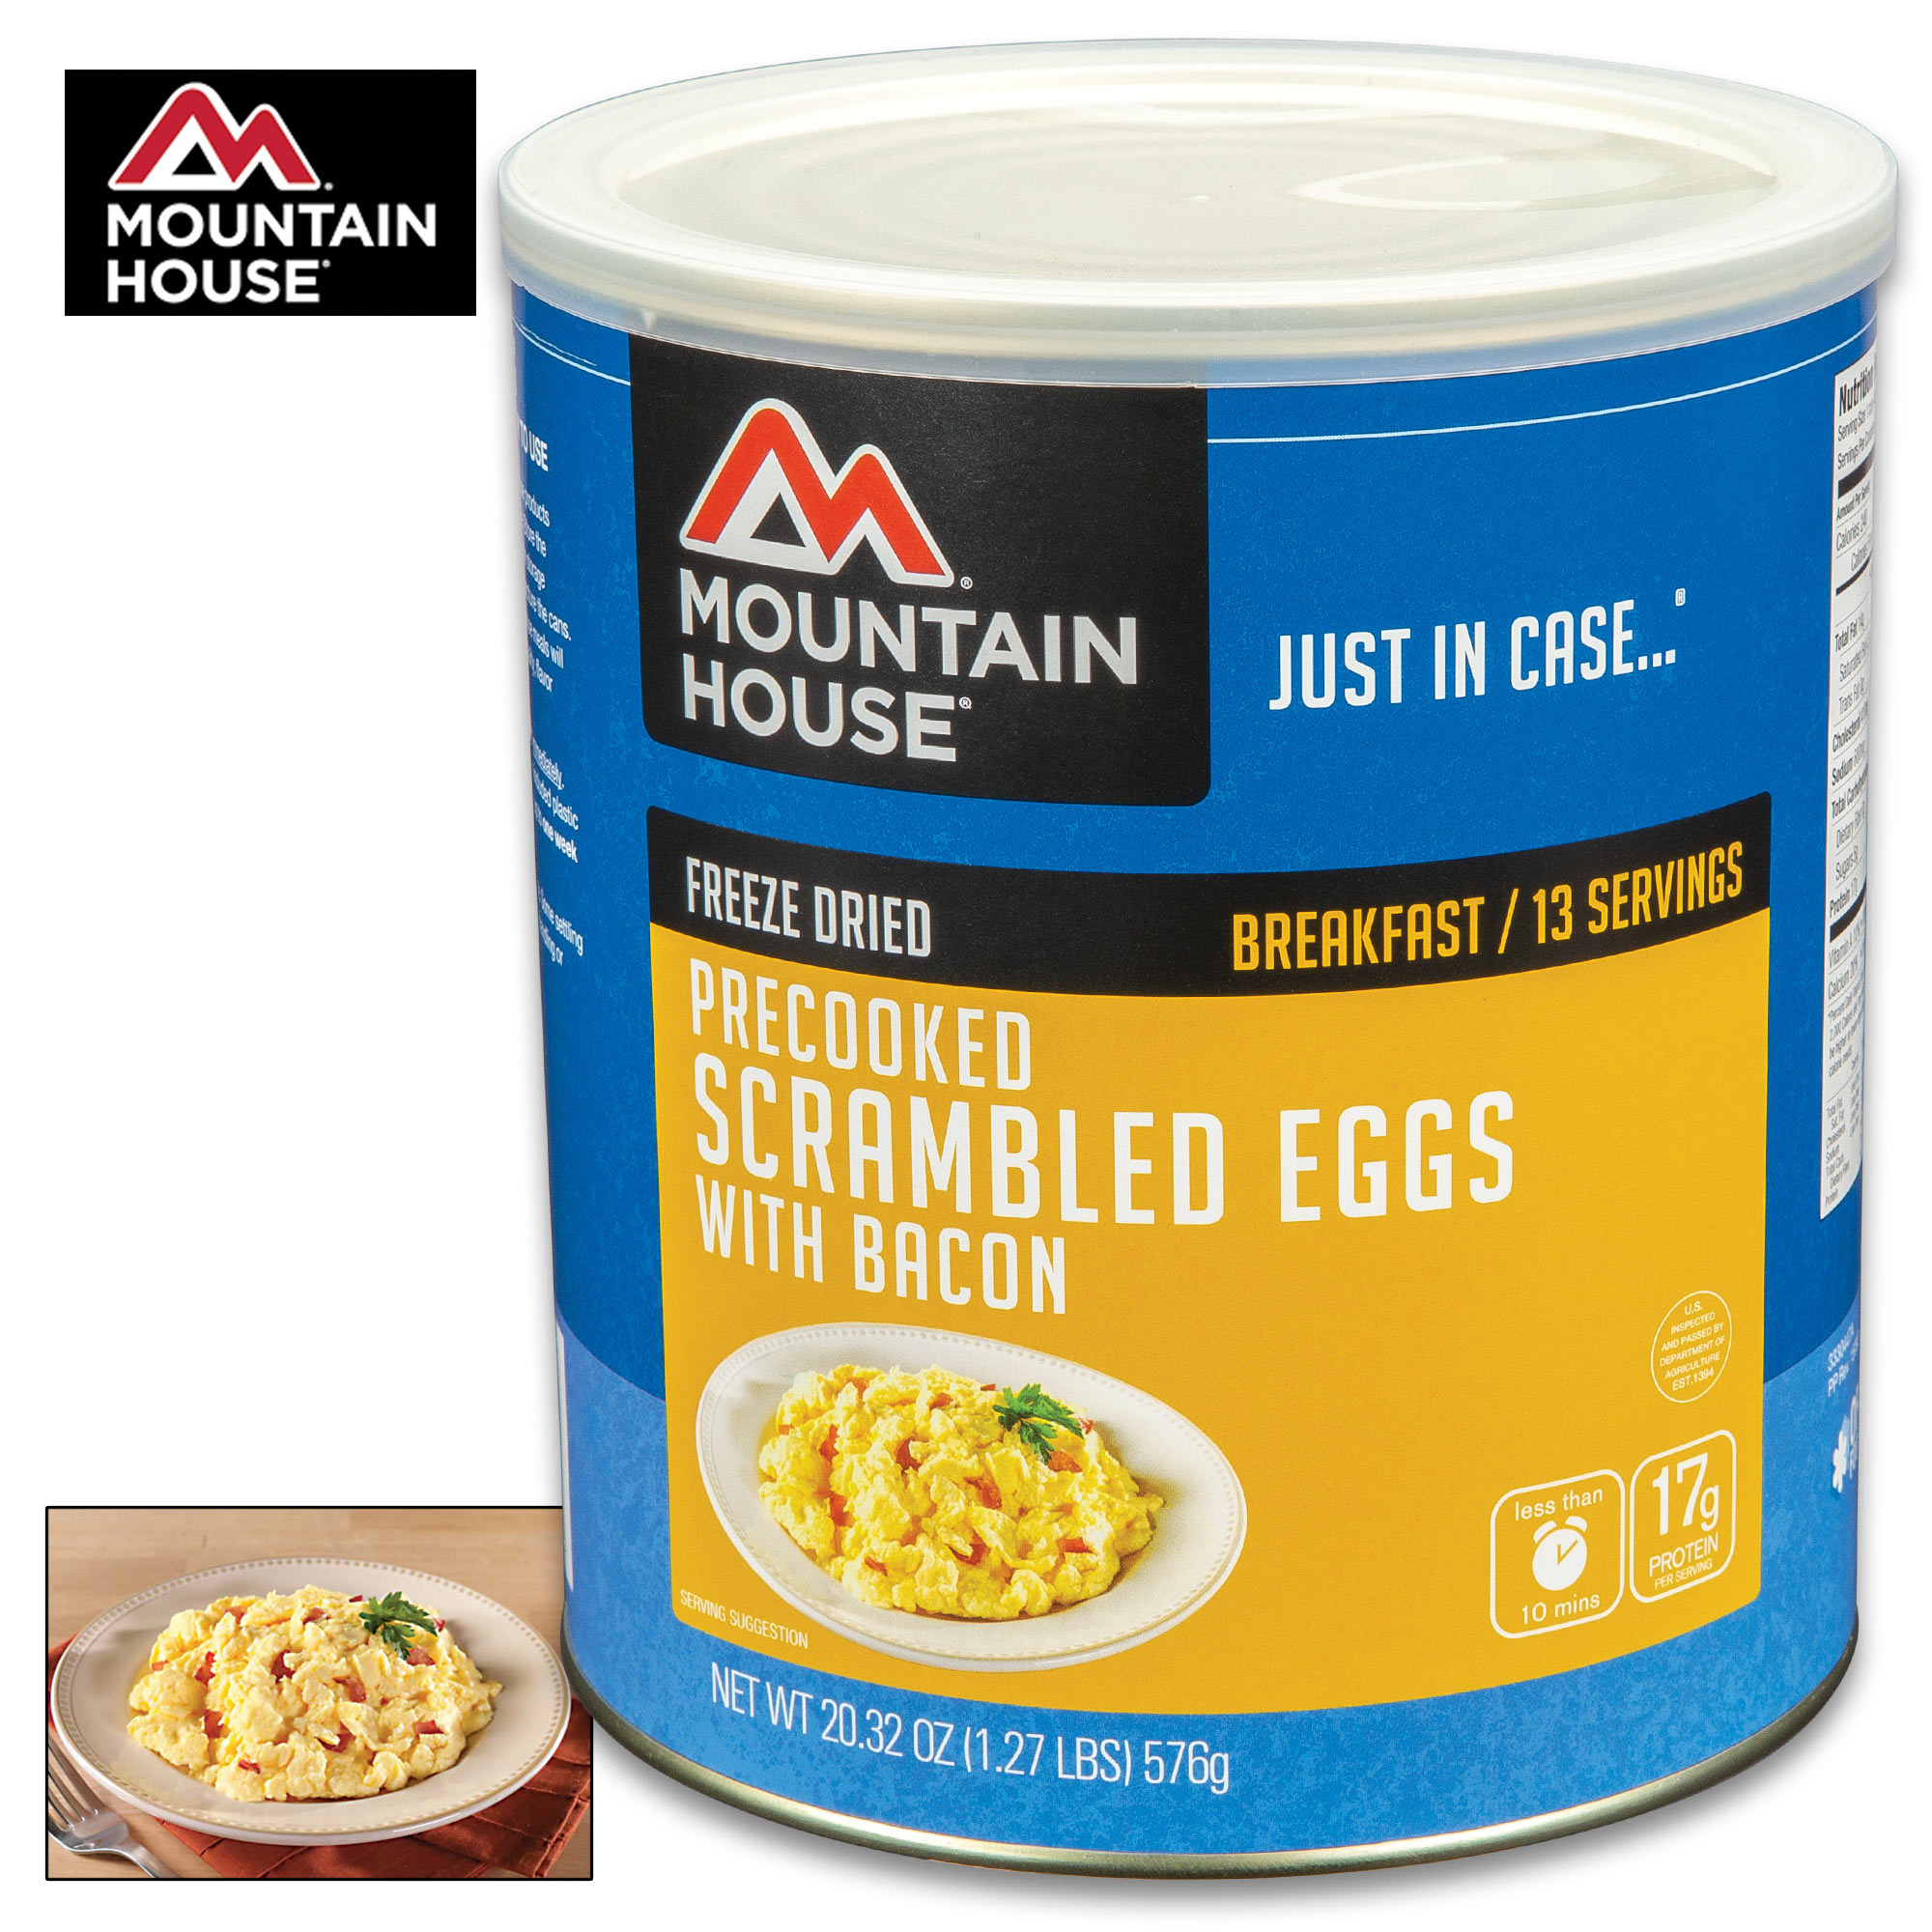 Canned Scrambled Eggs: Mountain House Scrambled Eggs With Bacon Can 16 Servings